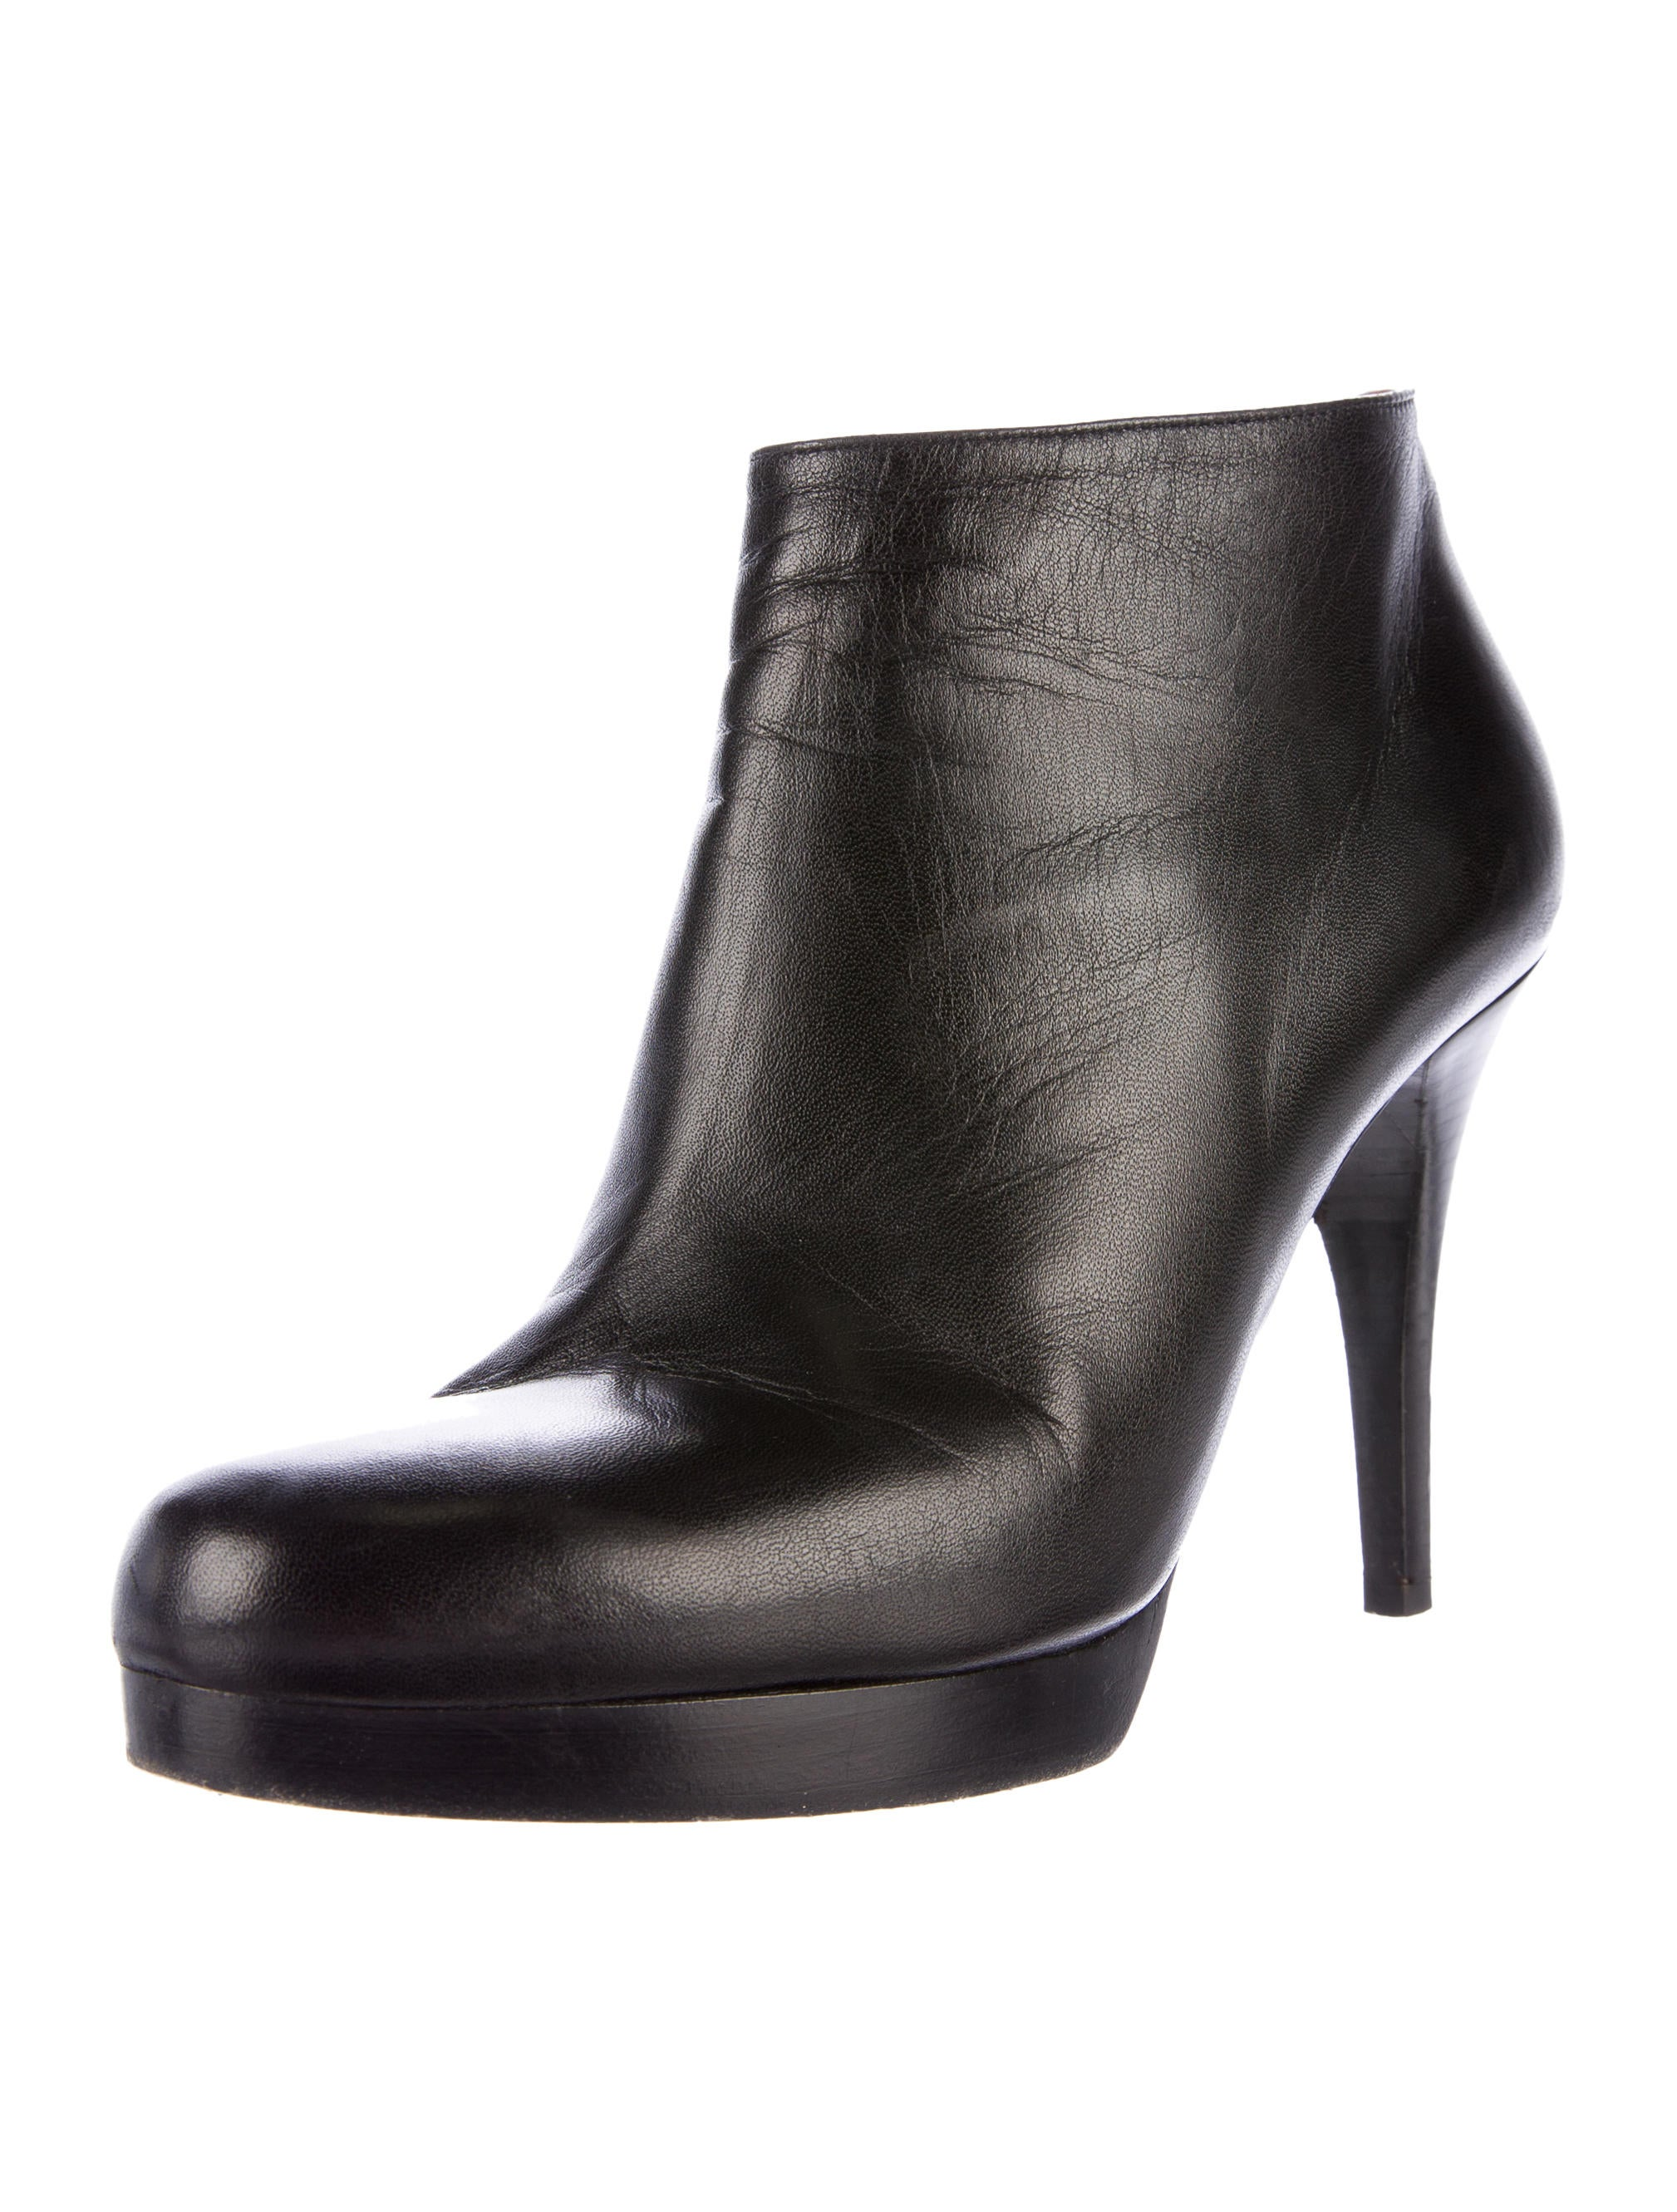 Free shipping on women's booties at mediacrucialxa.cf Shop all types of ankle boots, chelsea boots, and short boots for women from the best brands including Steve Madden, Sam Edelman, Vince Camuto and more. Totally free shipping & returns.